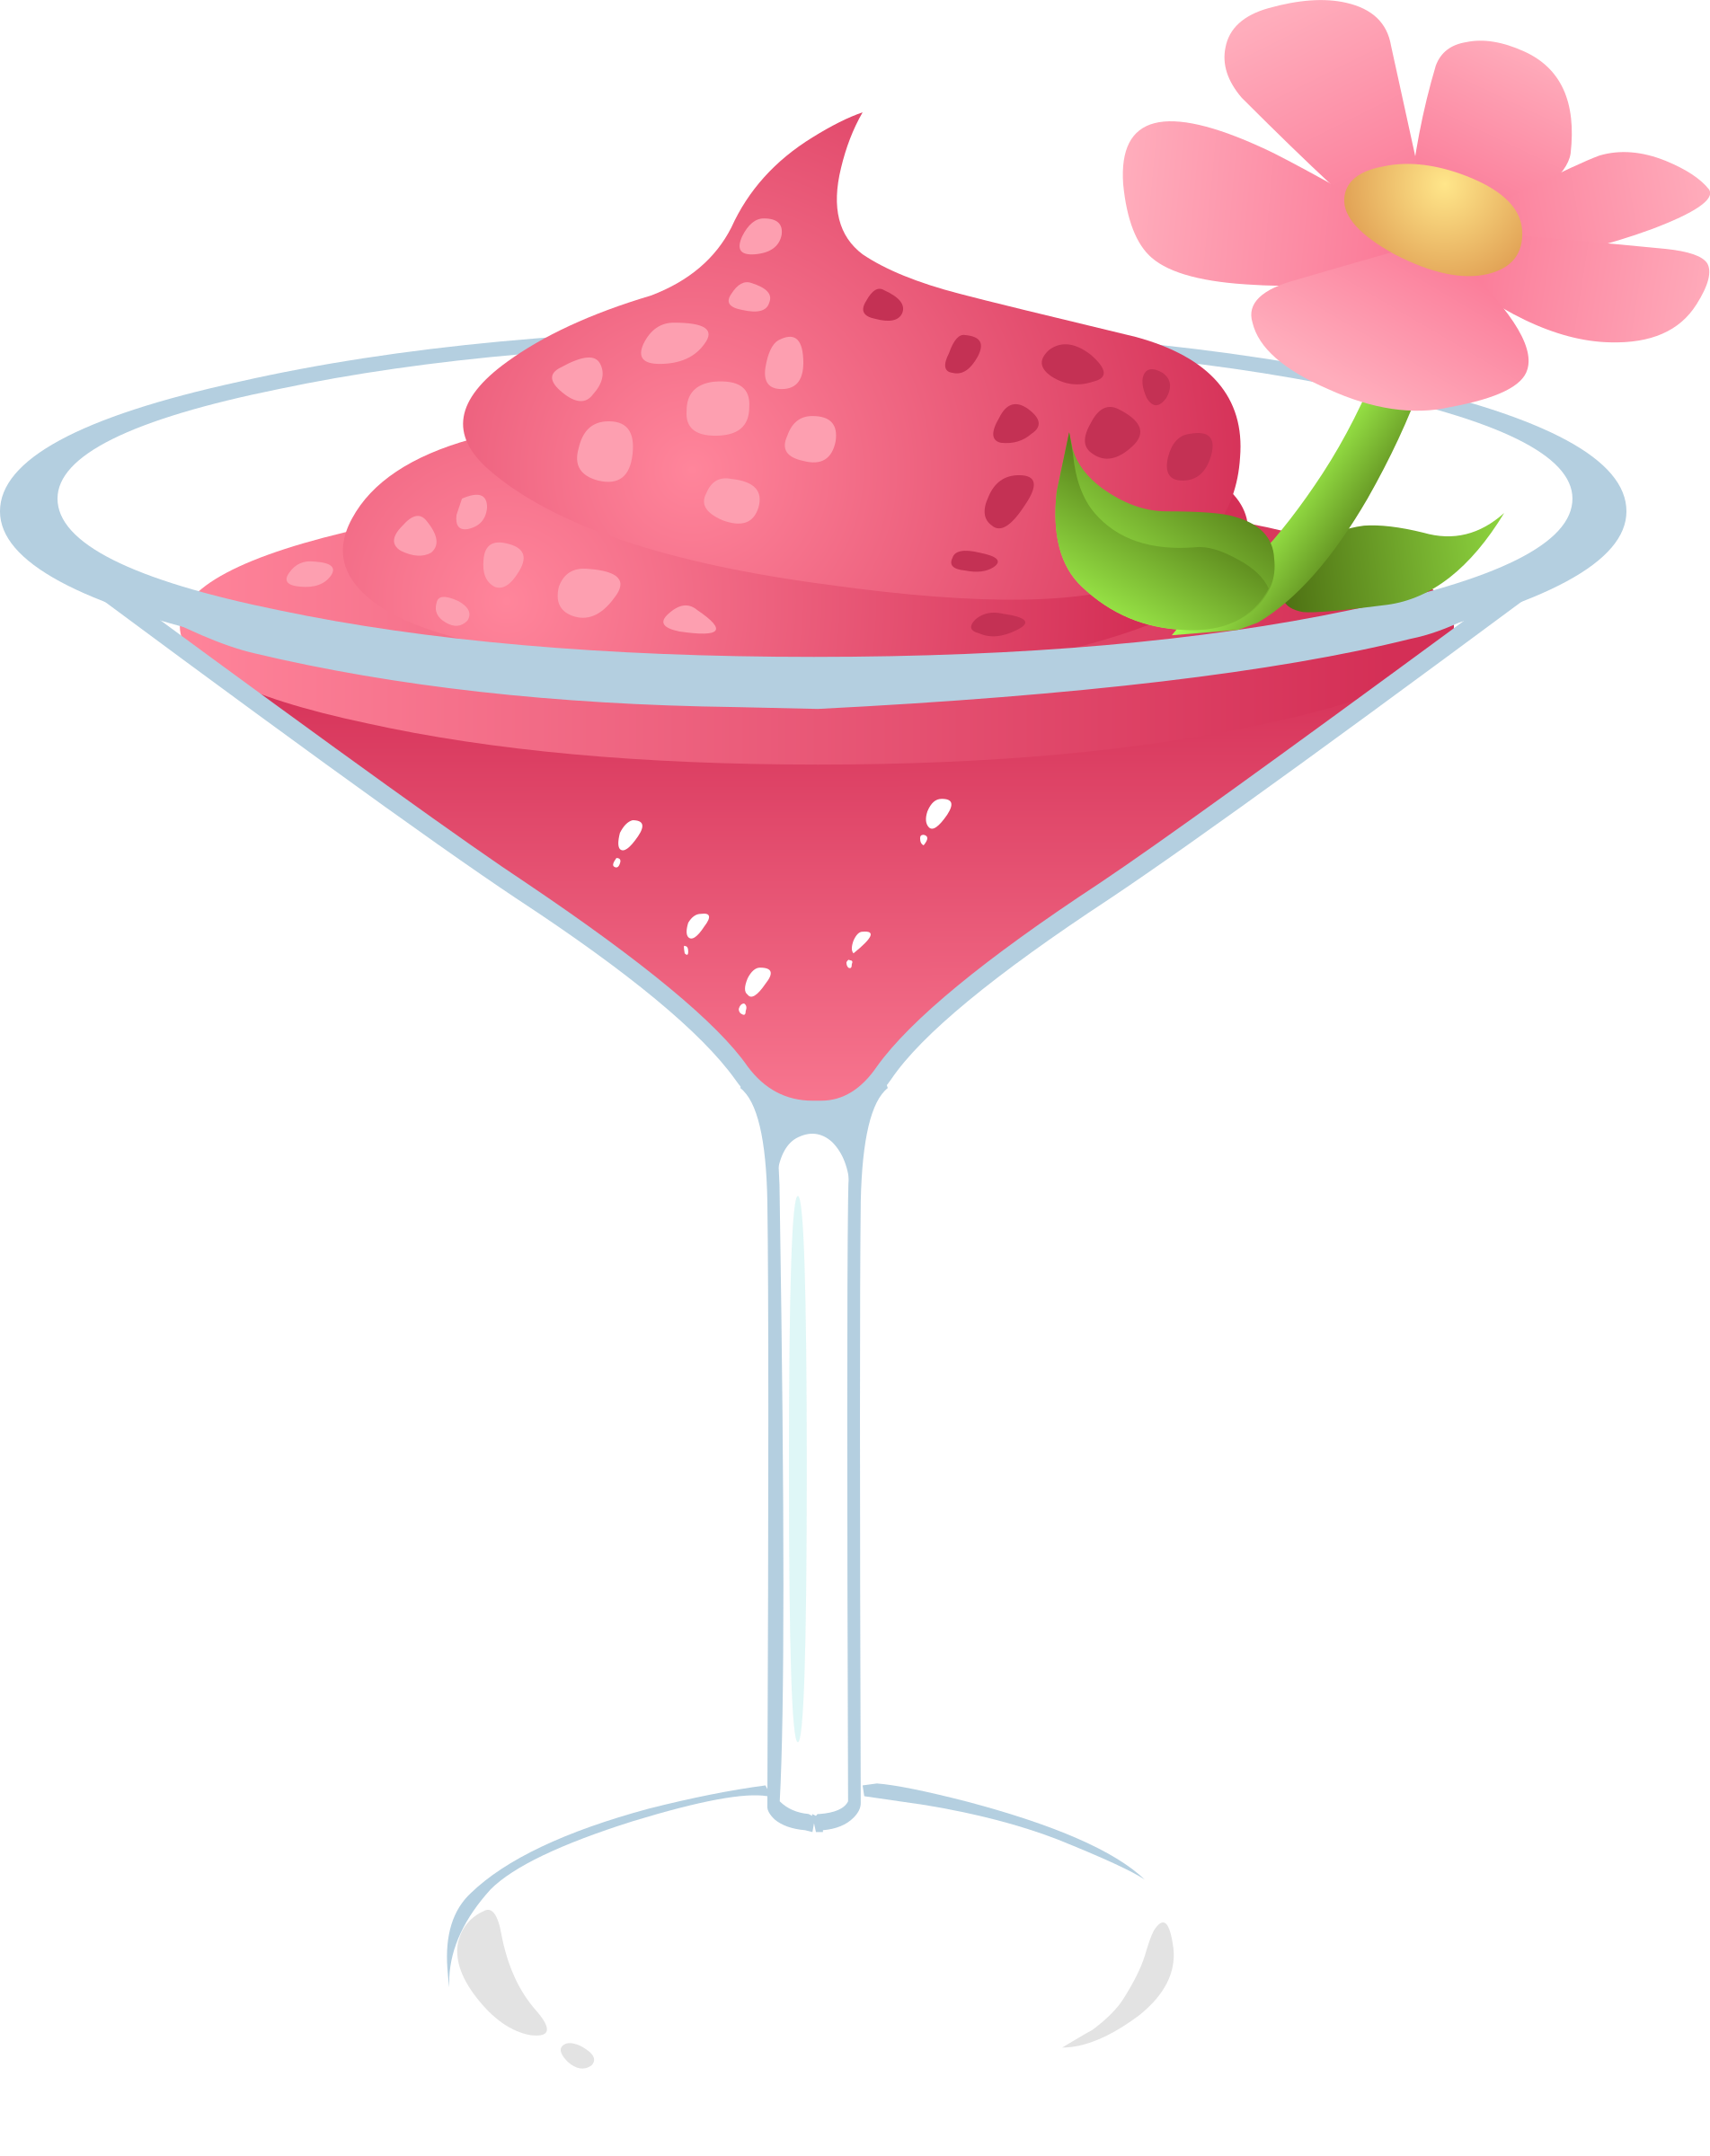 Glitch clipart pink lady IMAGE (PNG) Drink Gurly BIG